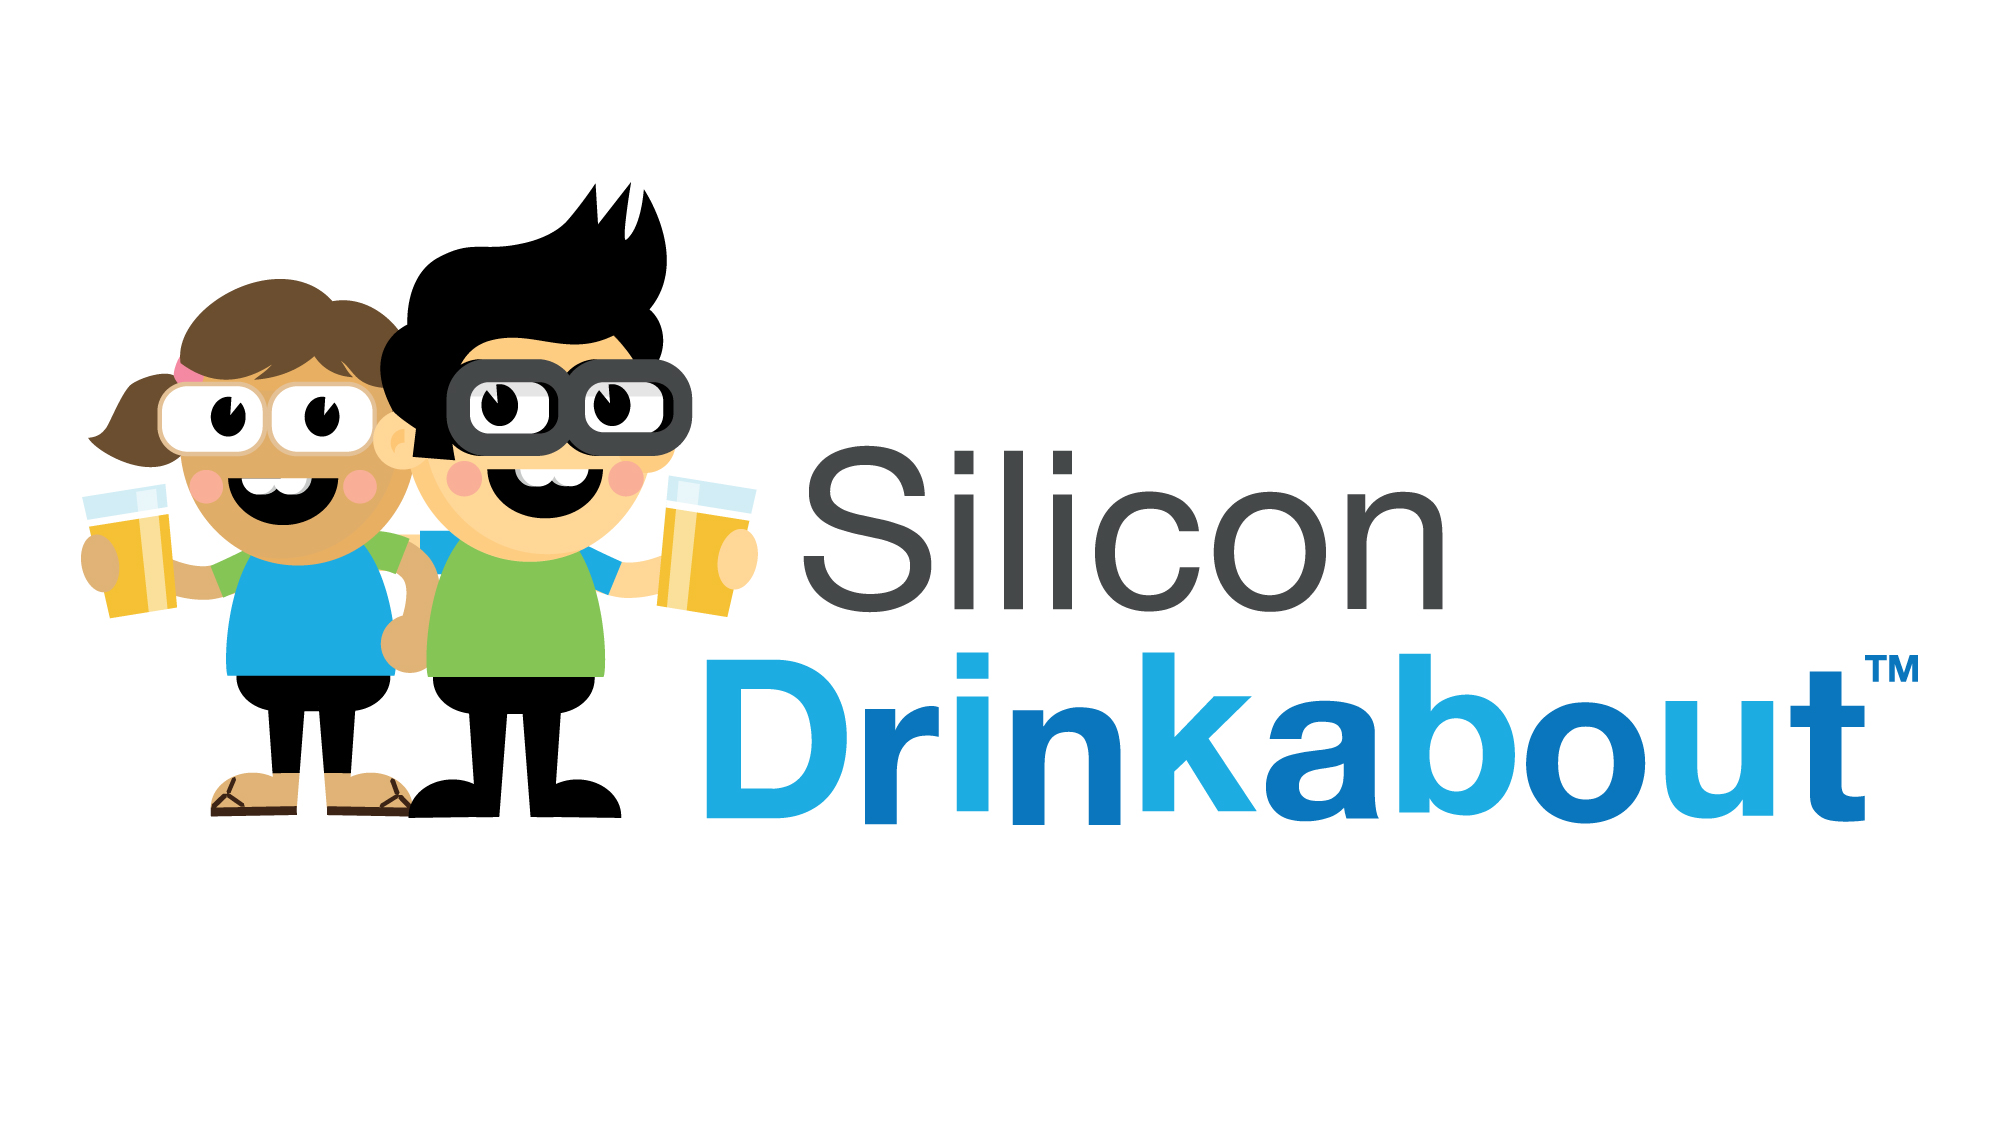 Silicon Drinkabout Guildford